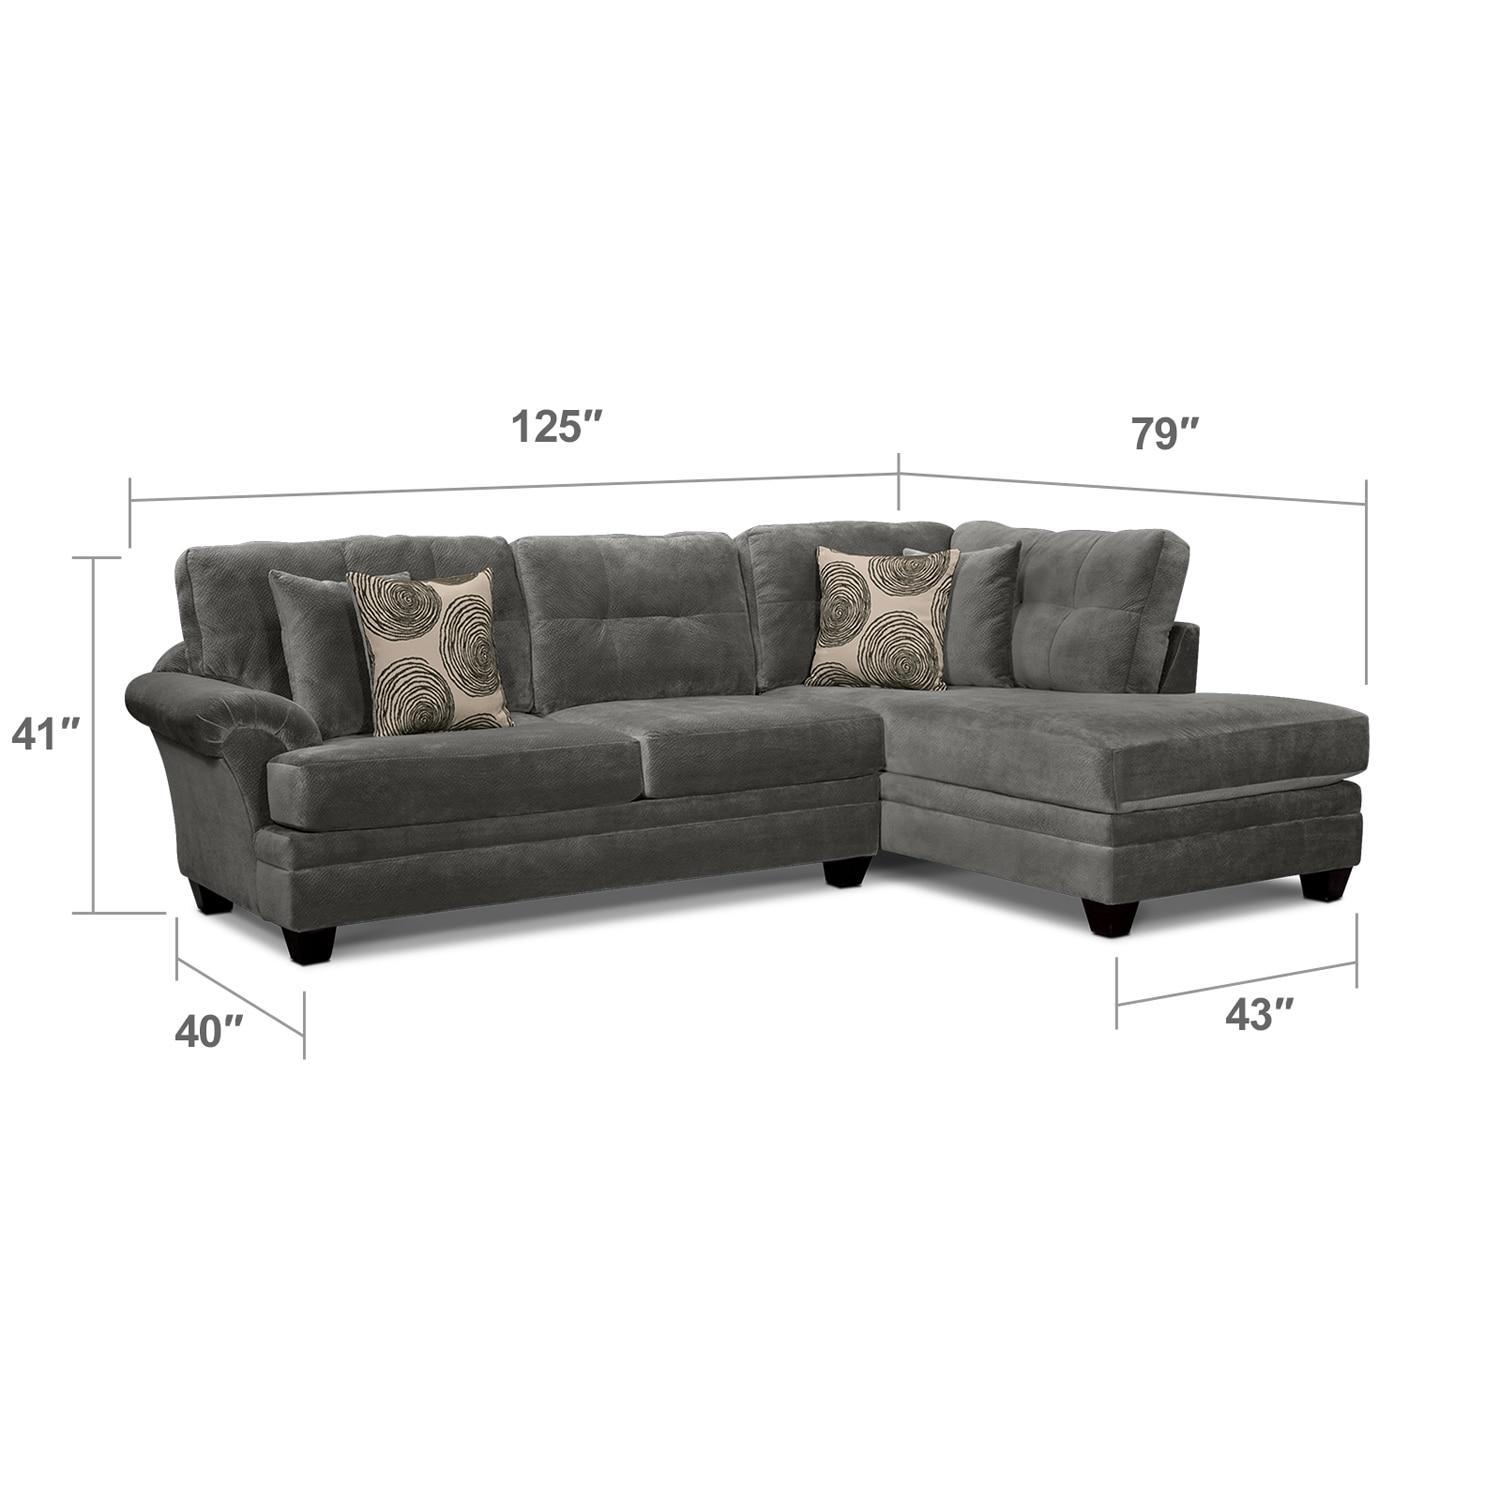 Living Room Furniture - Cordelle 2-Piece Right-Facing Chaise Sectional - Gray  sc 1 st  Value City Furniture : right chaise sectional - Sectionals, Sofas & Couches